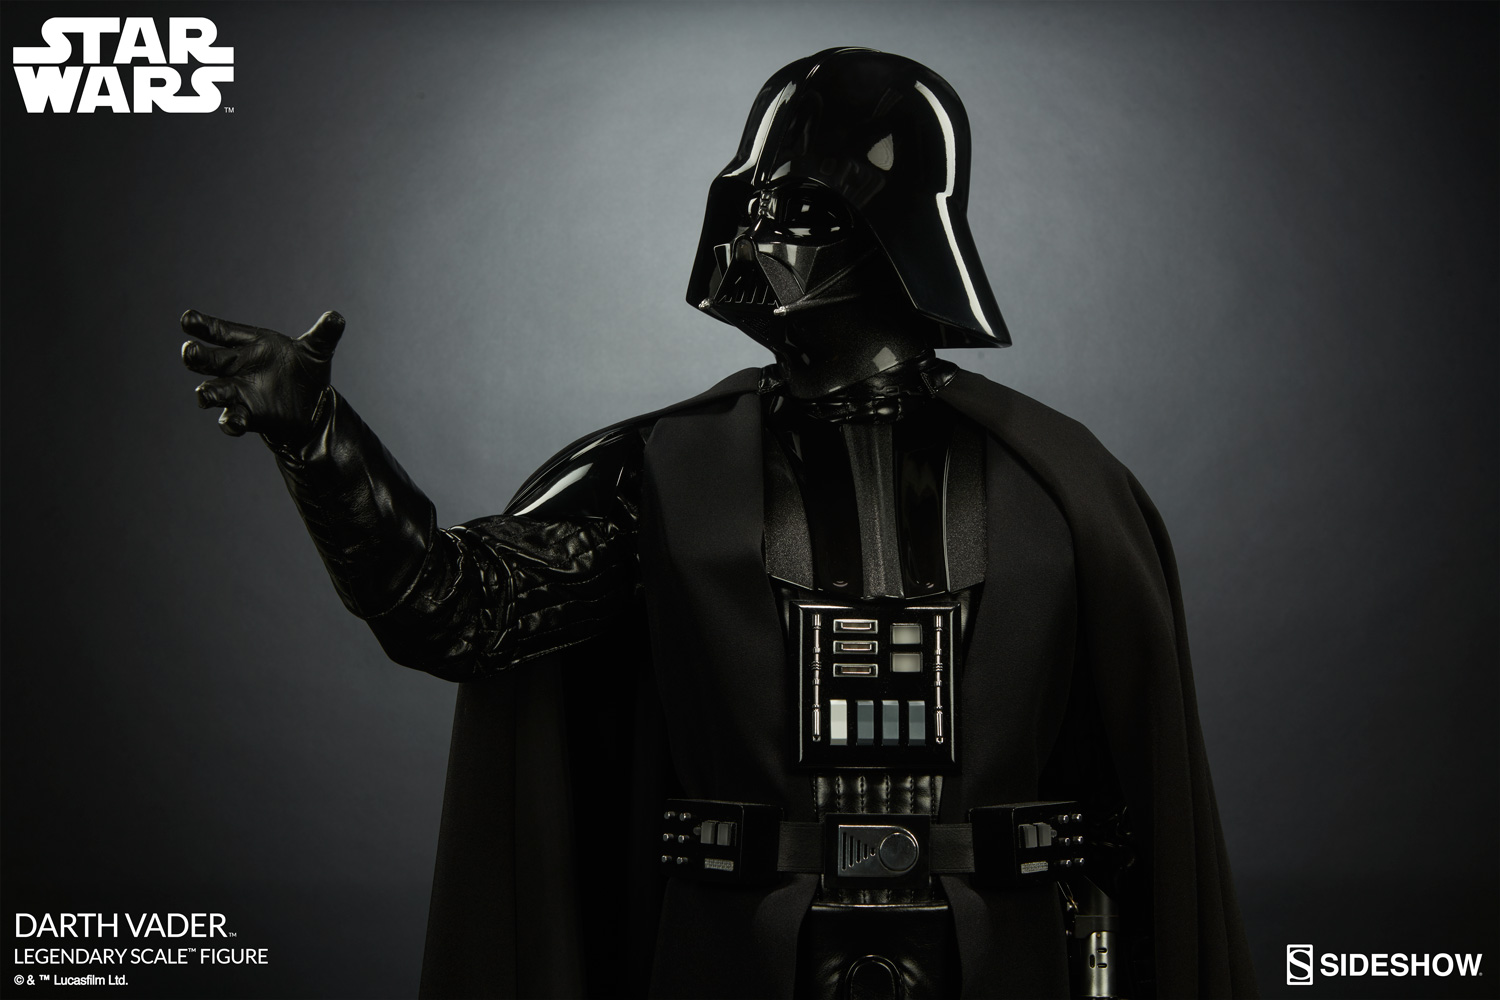 Sideshow Darth Vader Legendary Scale Figure Photos And